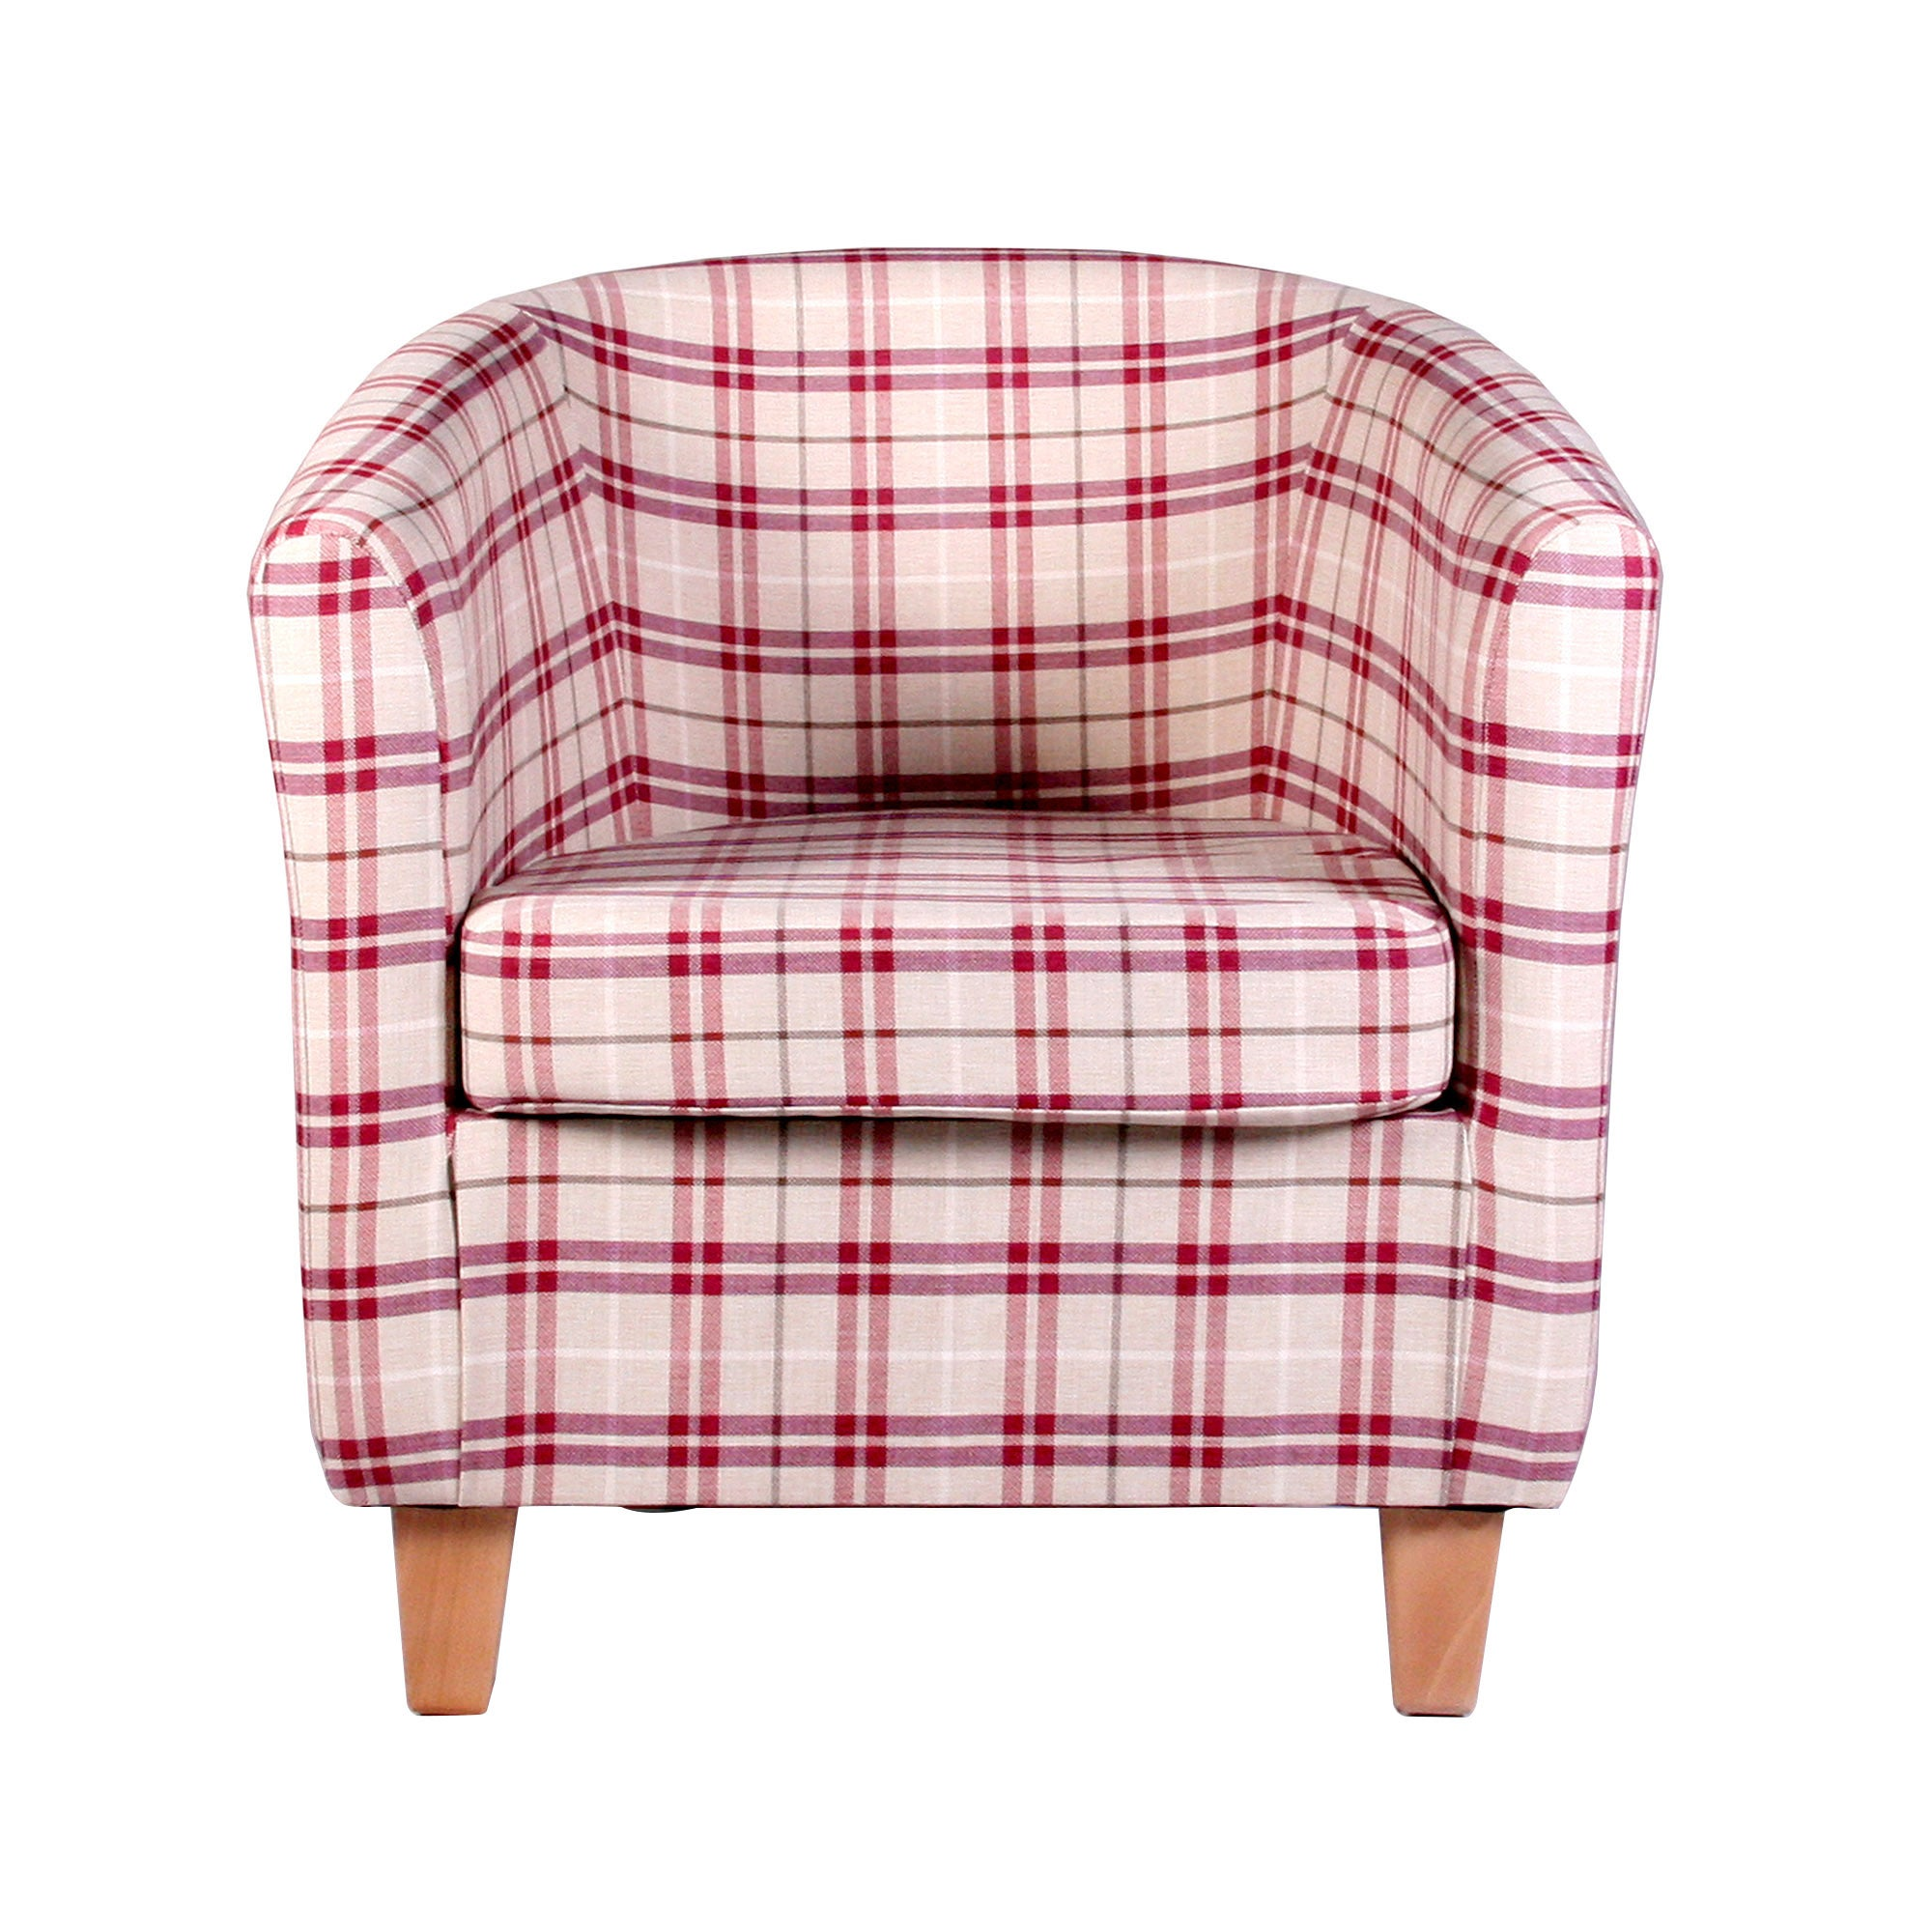 Adele Check Berry Tub Chair Red / Brown